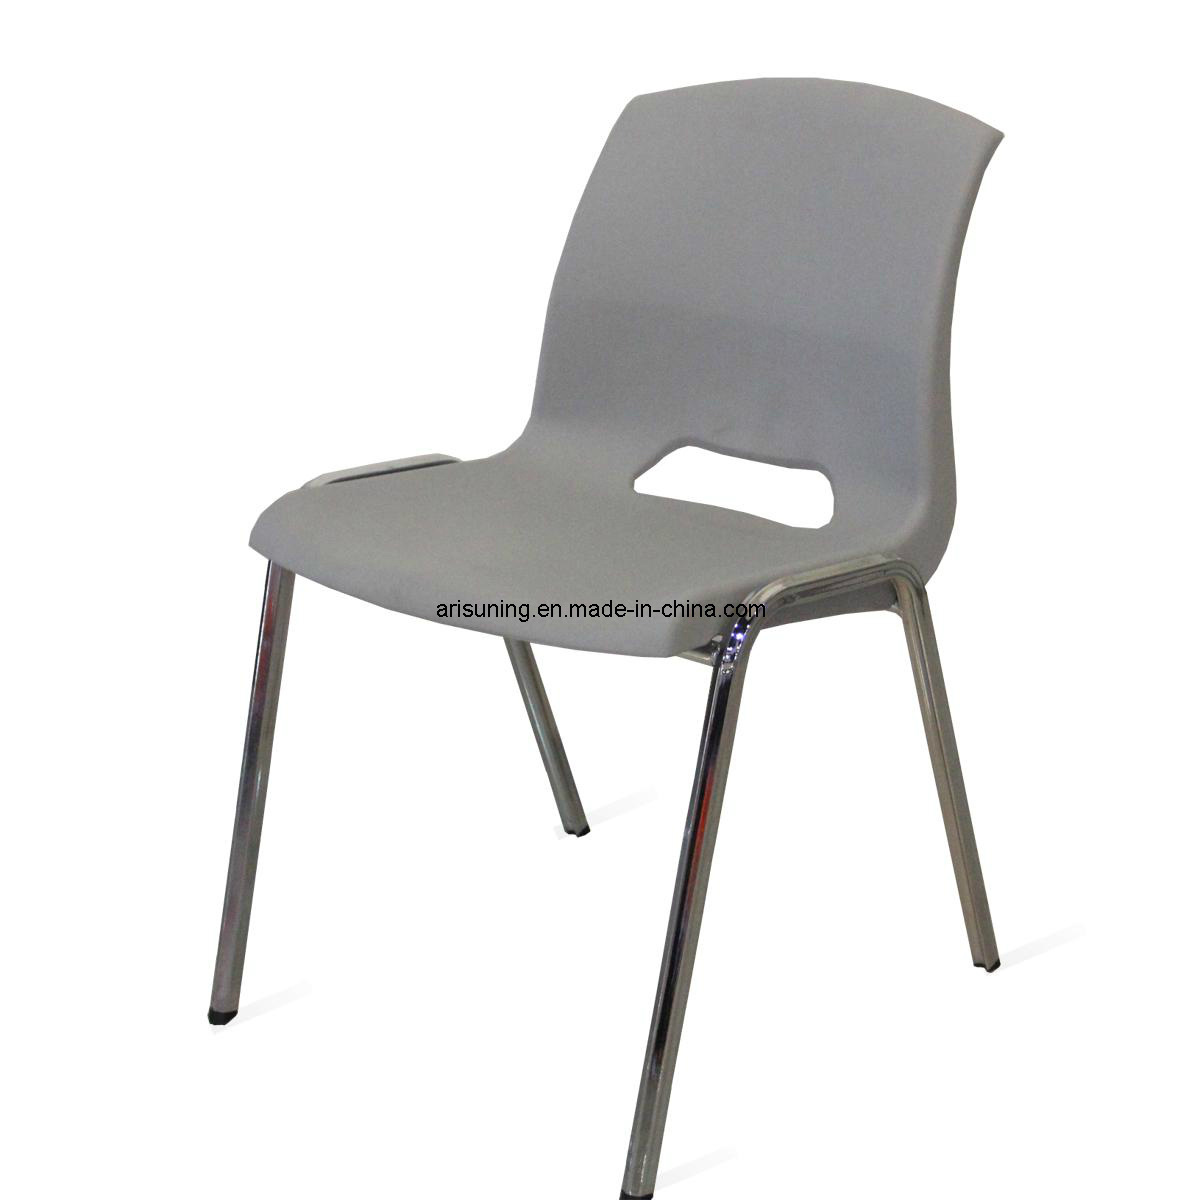 Chaise Empilable En Plastique 1222 De Formation Bureau